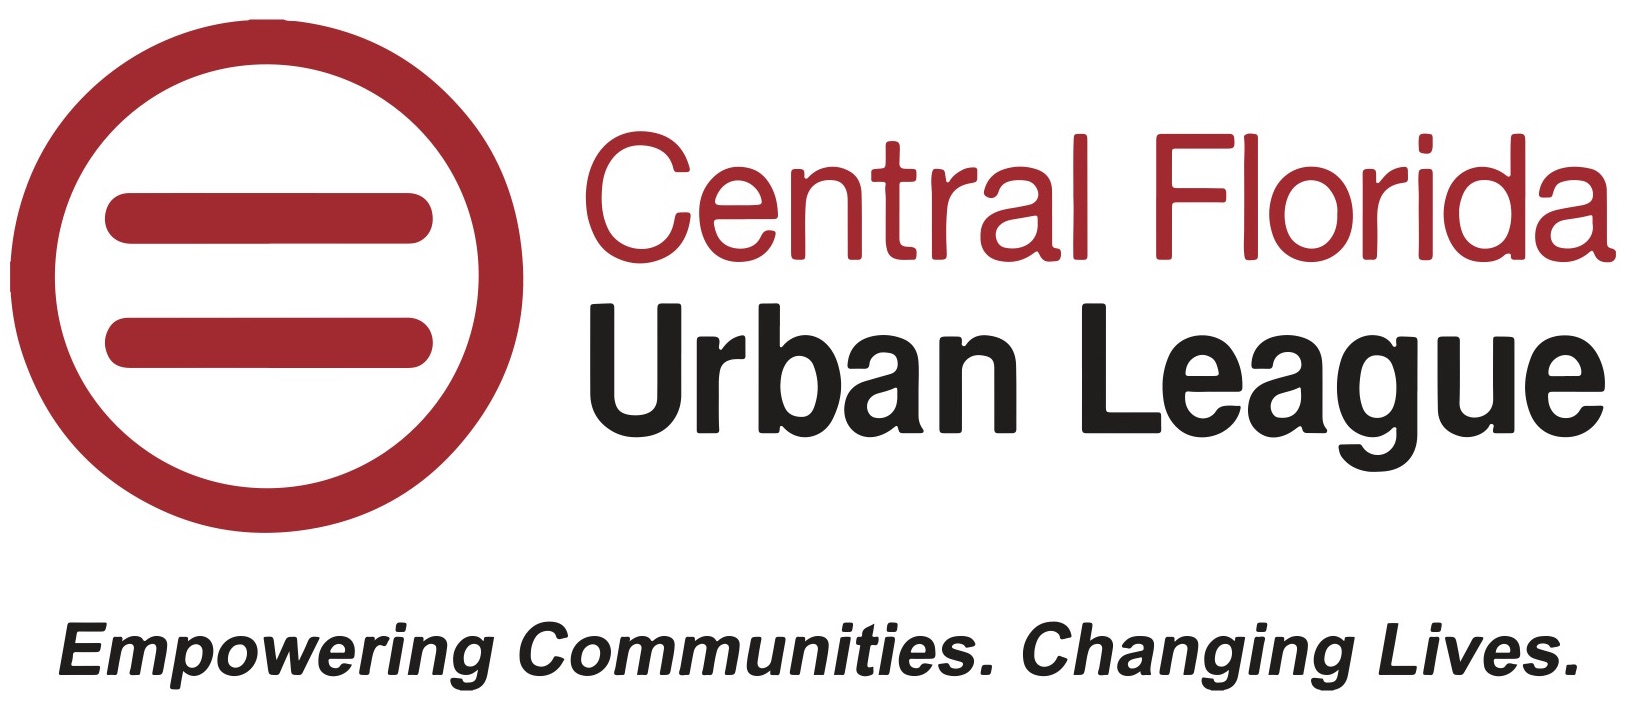 ... Of Programs And Services, The Central Florida Urban League Is Looking  Forward To Playing A Critical Role In Assisting The Sanford Housing  Authority ...